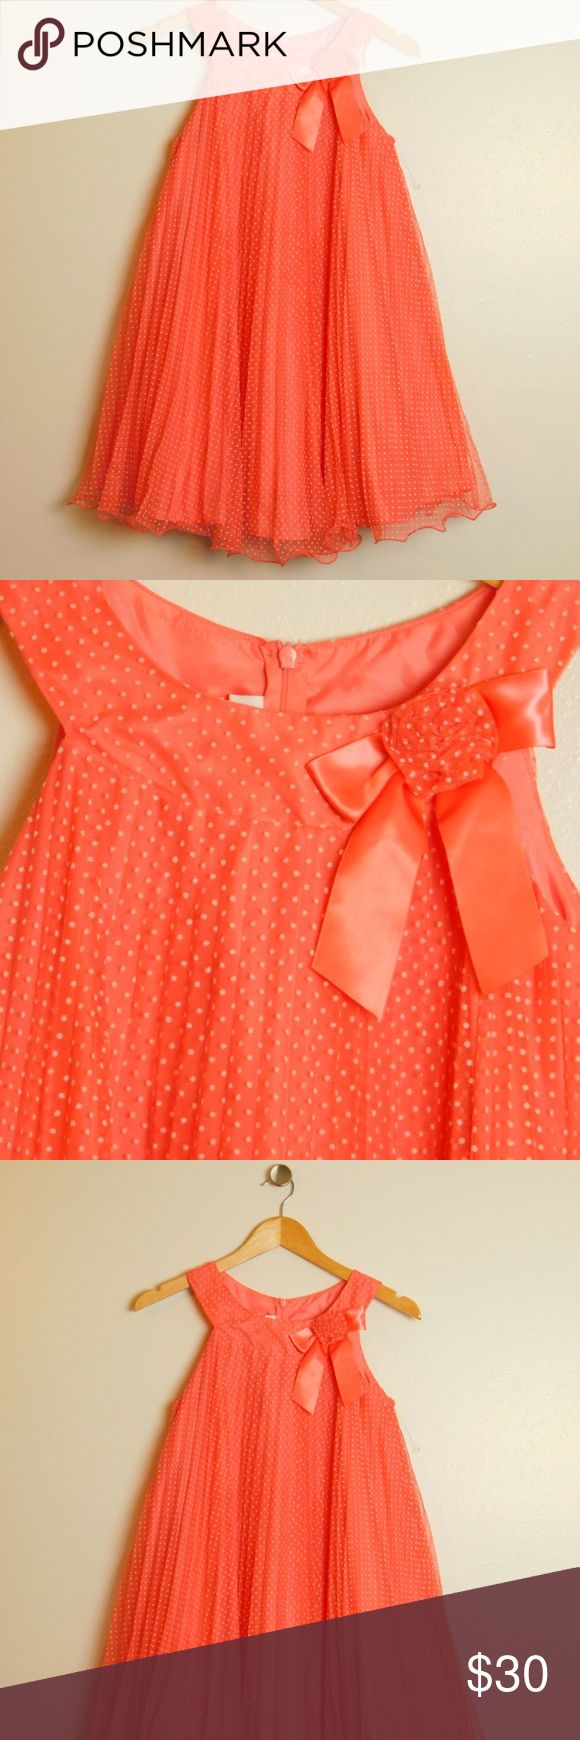 Bonnie Jean Coral Dot Mesh Pleated Dress 12 New NWOT New Without Tags condition Never worn, price tag removed Children's kids size 12 Color:     Coral White Trapeze u-neckline Sleeveless Hidden back zip closure Allover white flocked dot detail Allover pleated mesh overlay Rosette flower with satin bow at neckline Fully lined  Fabric & Care Dress 100% polyester Netting 100% nylon Machine washable Bonnie Jean Dresses